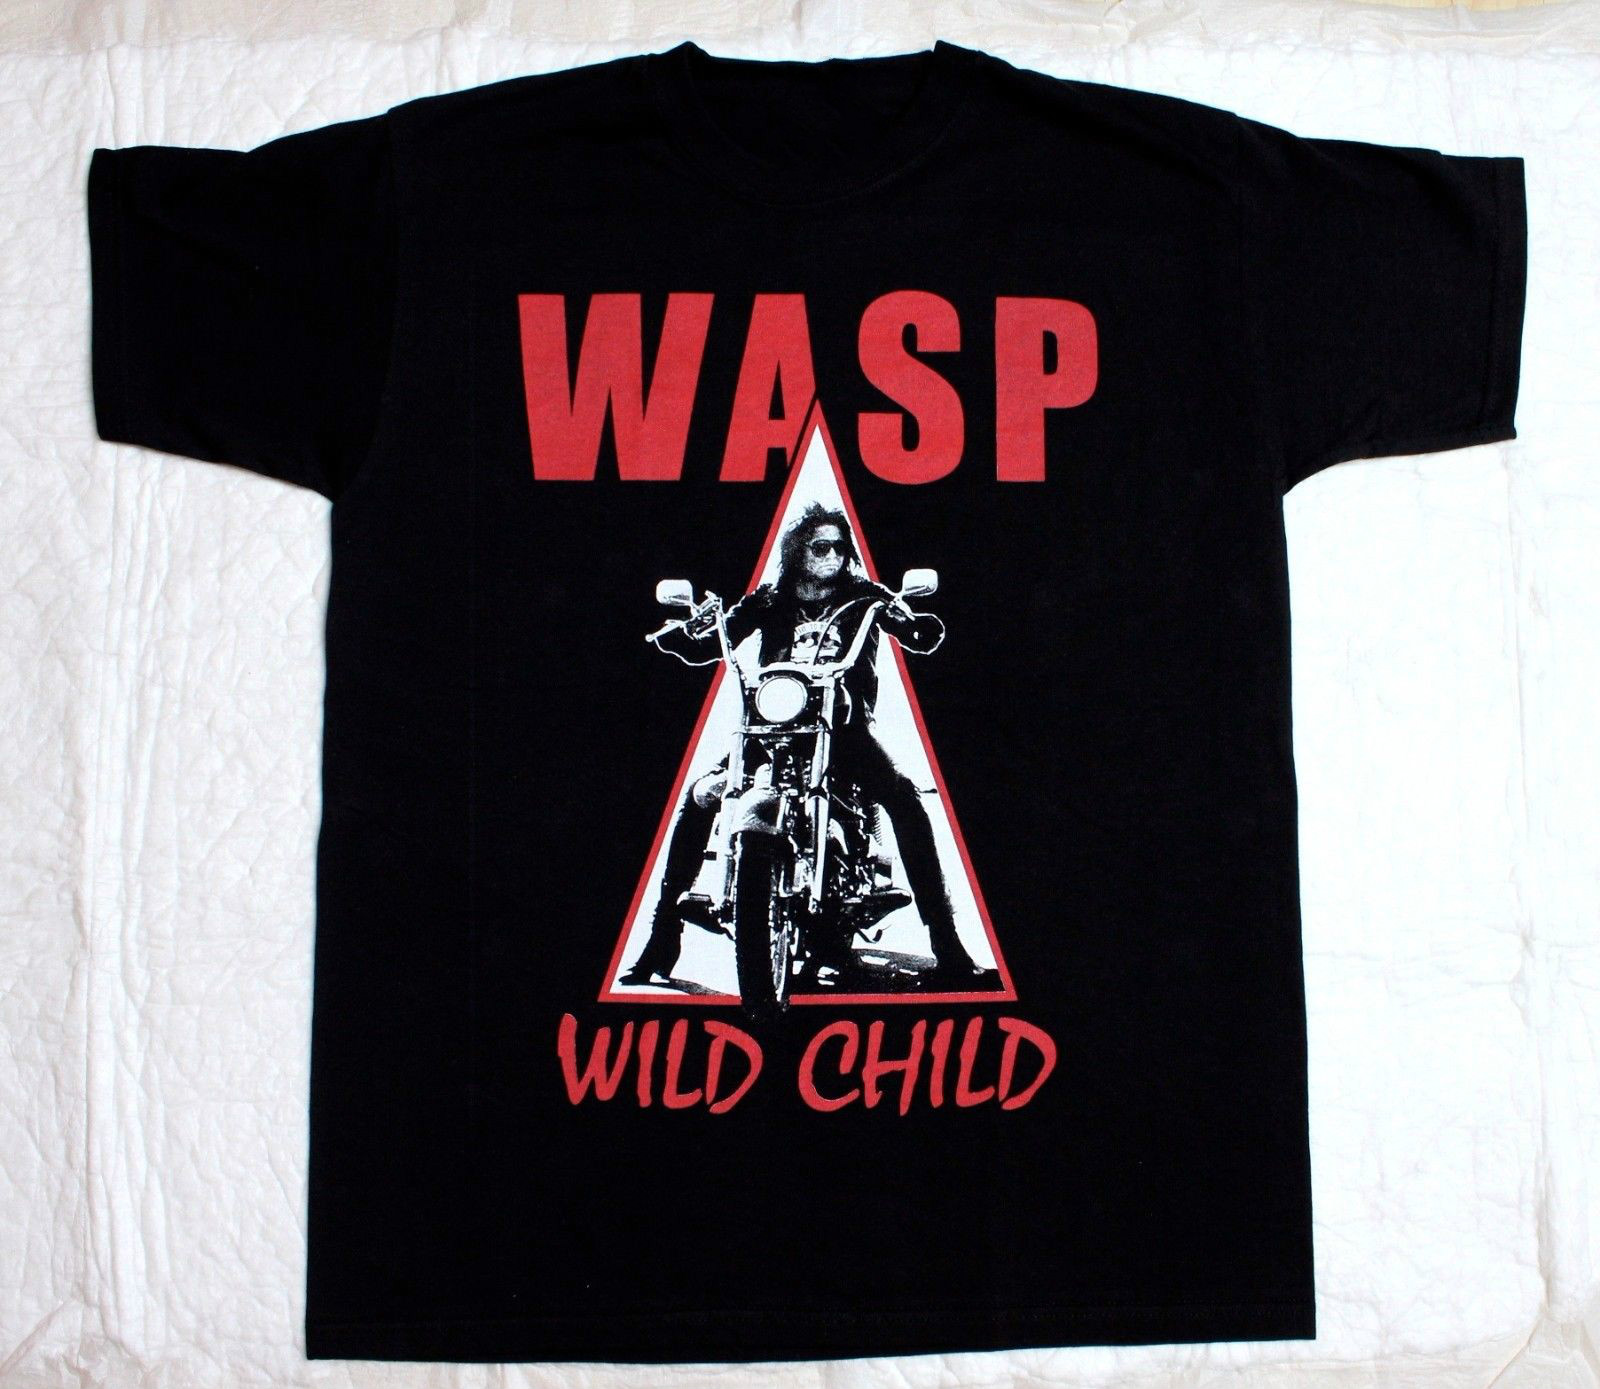 W.A.S.P. WILD CHILD85 HEAVY METAL BAND WASP TWISTED SISTER NEW BLACK T-SHIRT Cotton T-Shirt Fashion T Shirt top tee